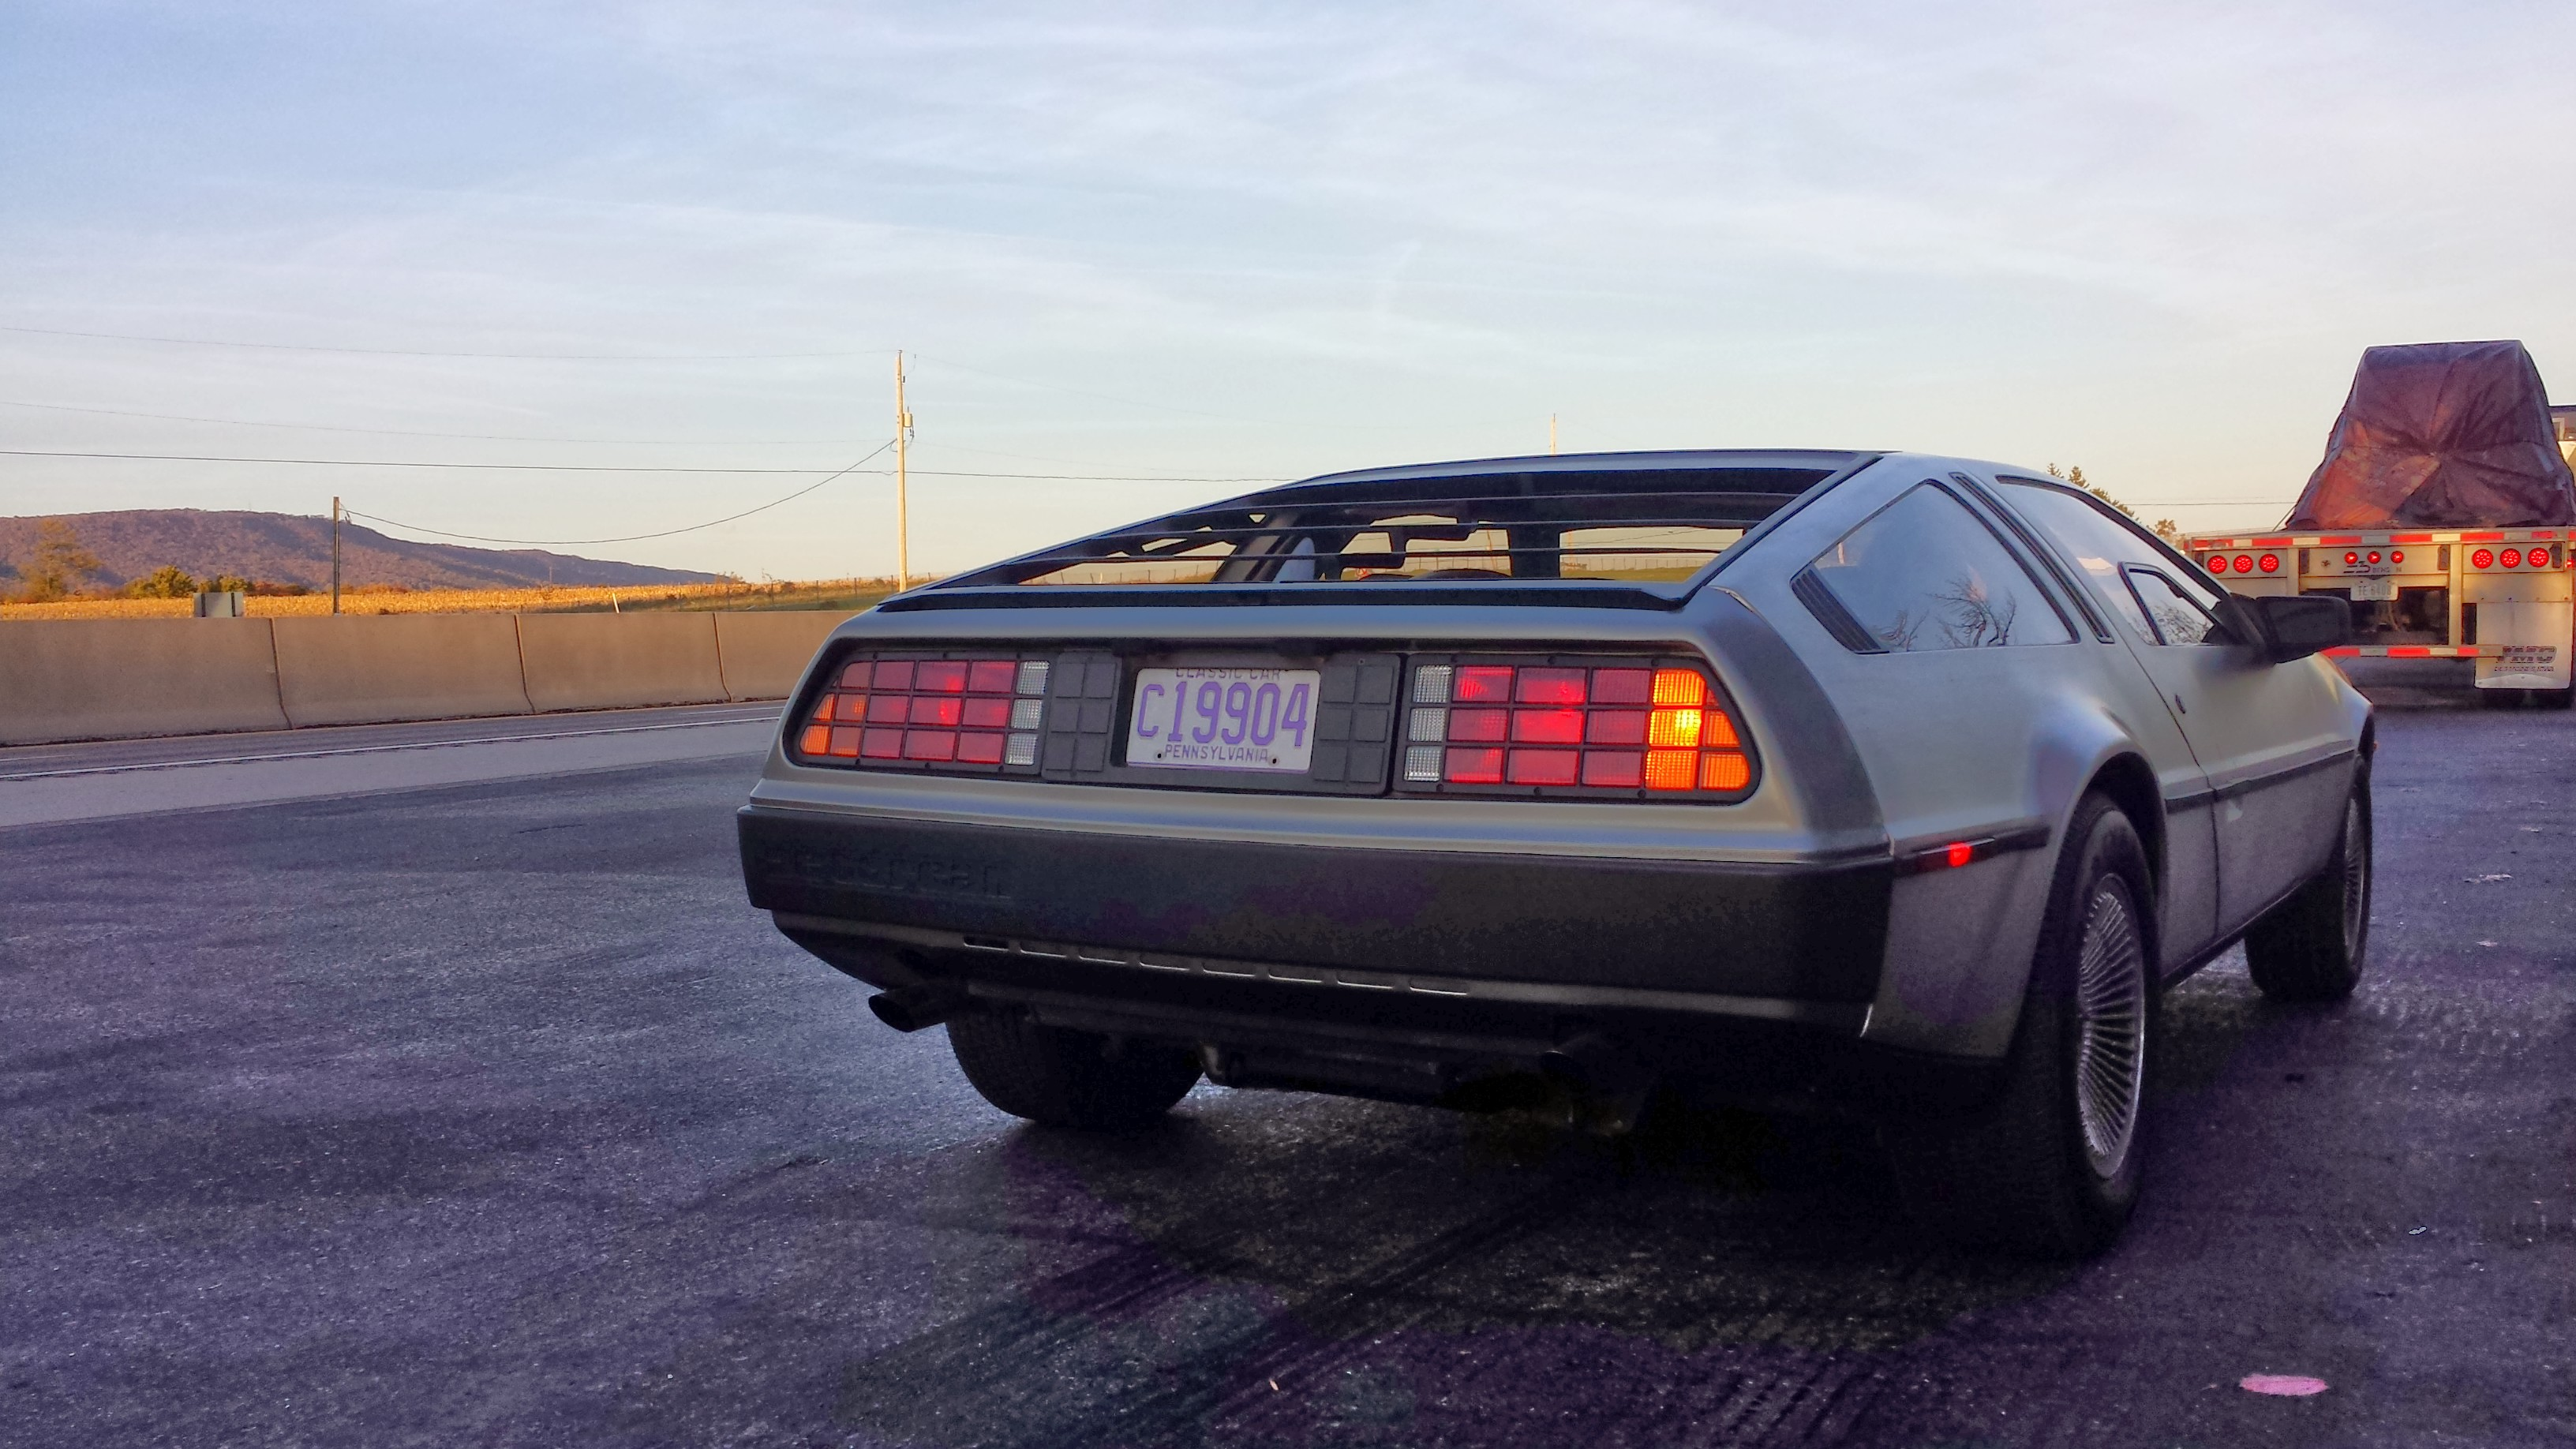 Delorean DMC-12 1983 #12